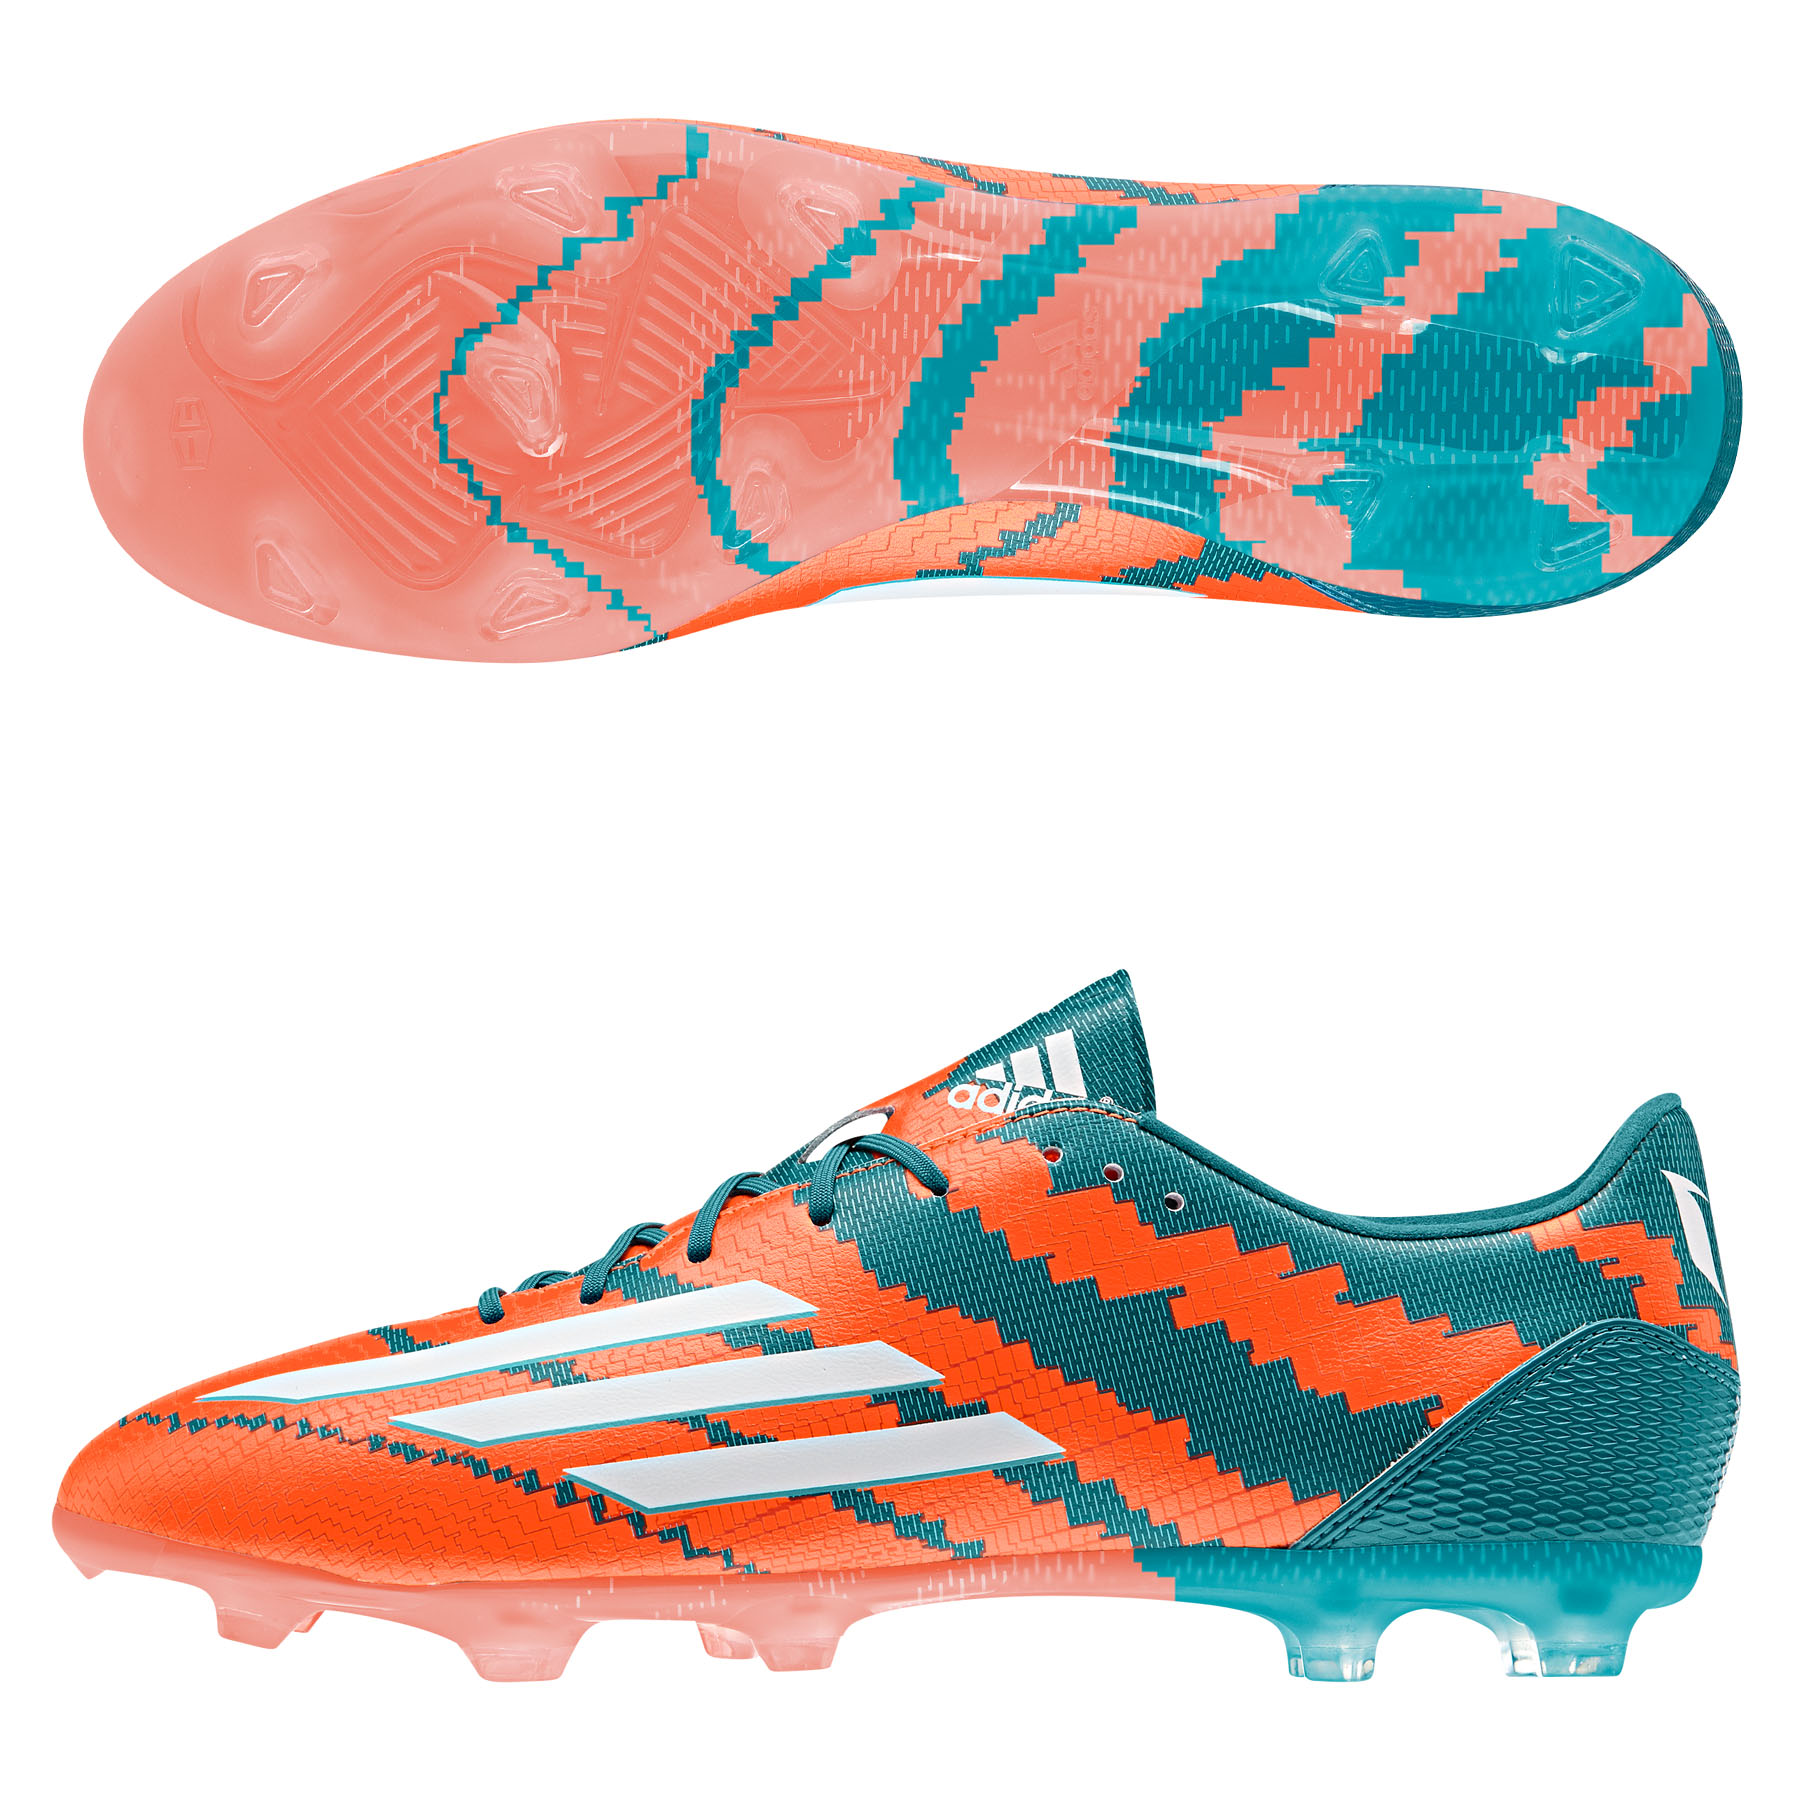 Adidas Messi 10.2 Firm Ground Football Boots Lt Blue